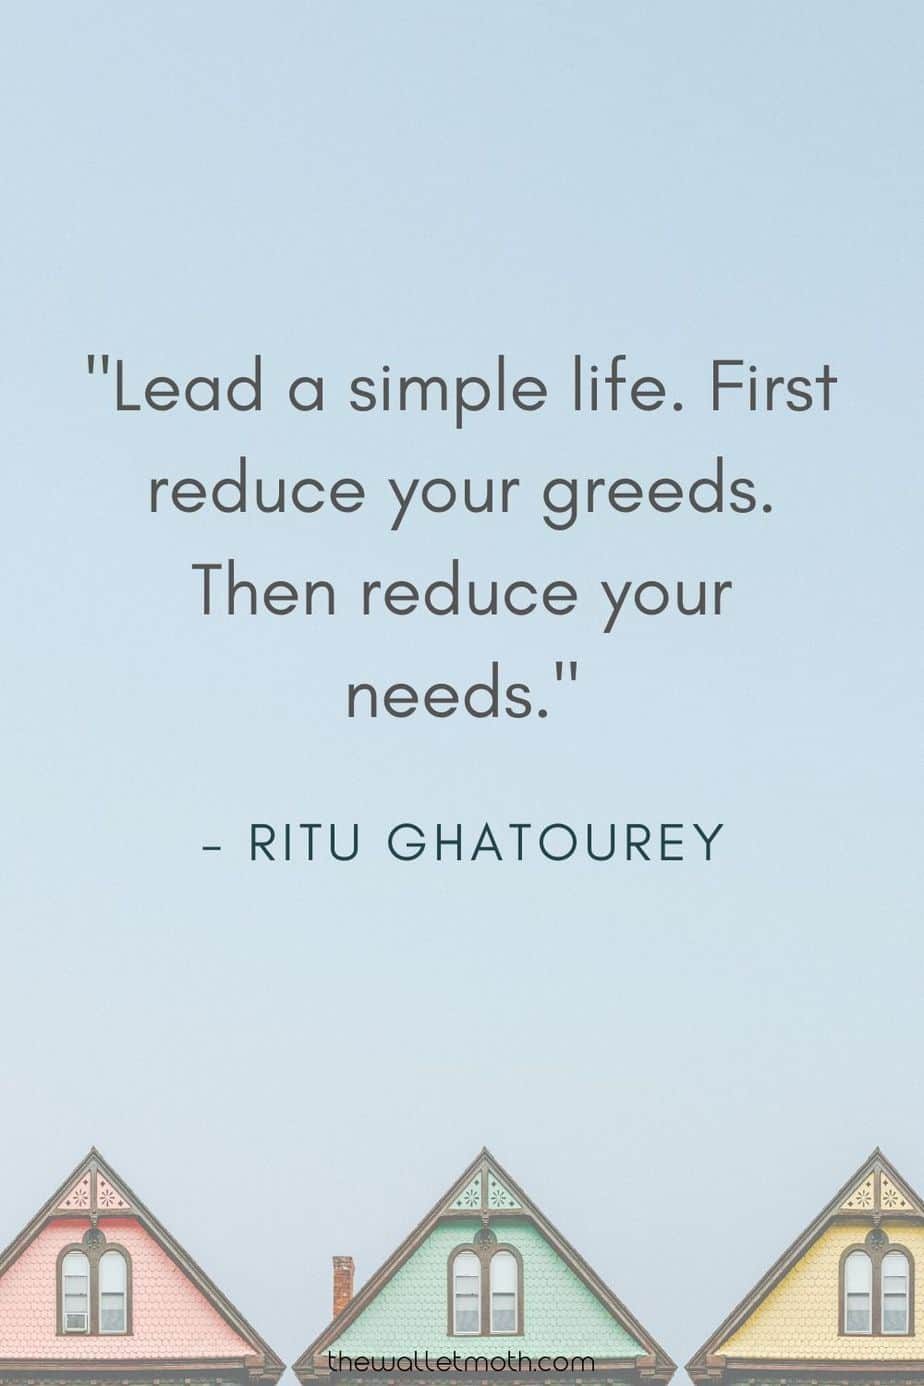 """Lead a simple life. First reduce your greeds. Then reduce your needs."" - Ritu Ghatourey"